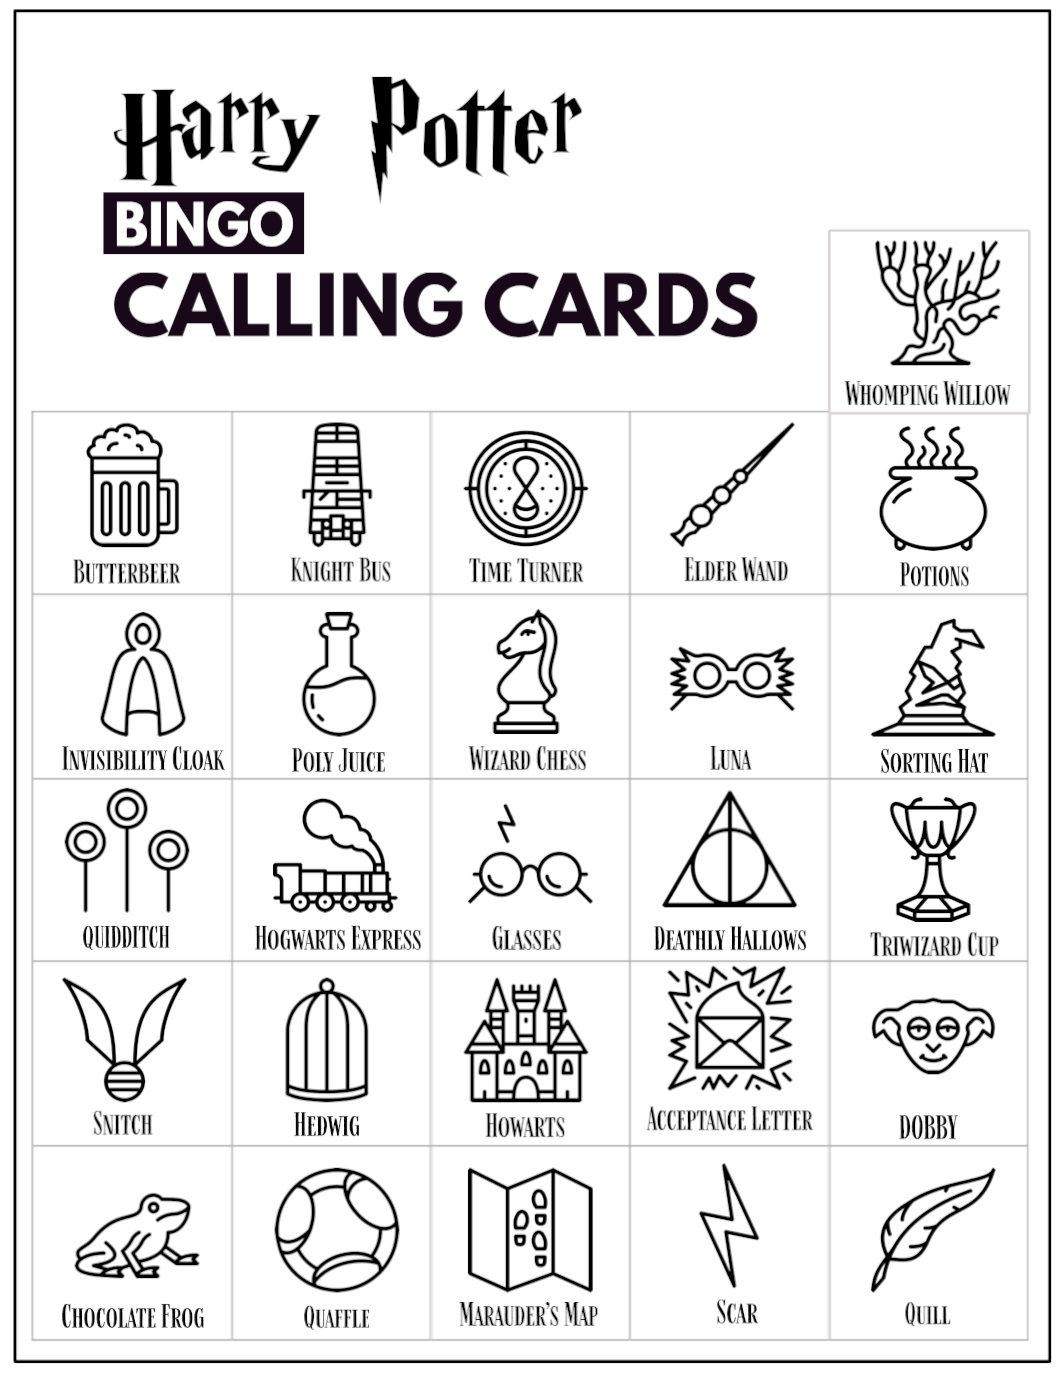 Free Printable Harry Potter Bingo Game - Paper Trail Design